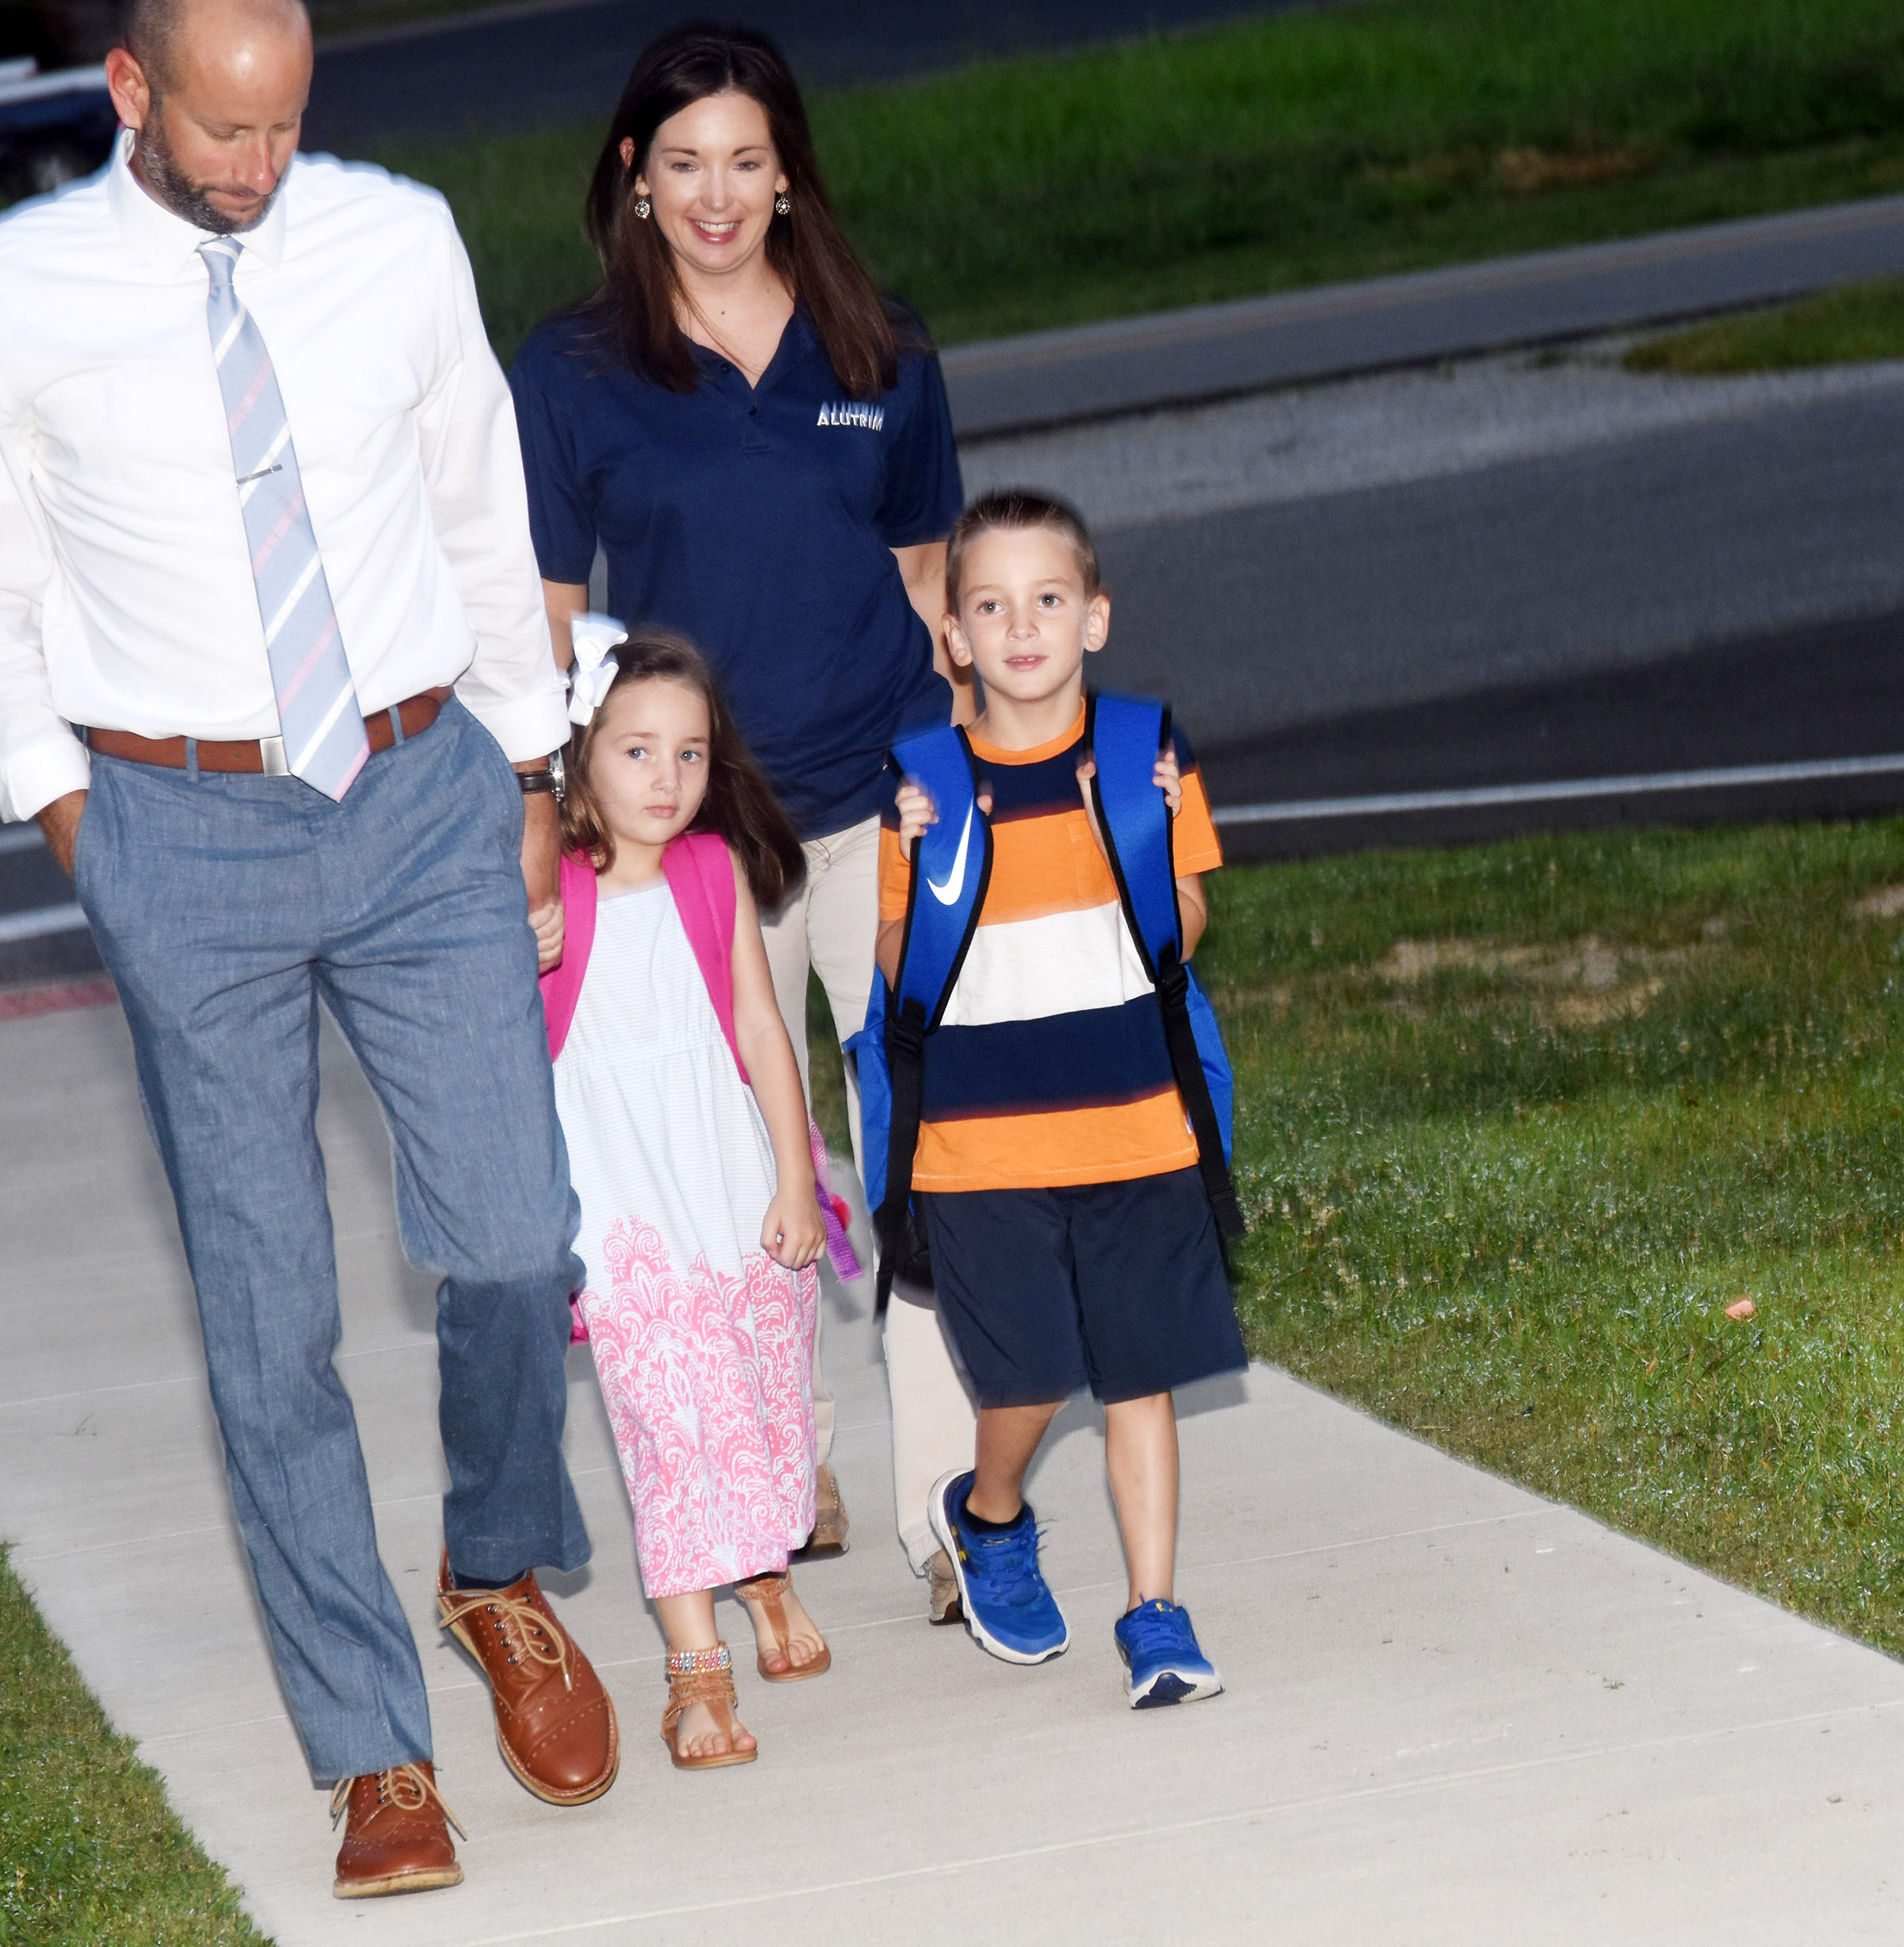 Campbellsville High School teacher Ben Davis and his wife Stephanie walk with their children as they start the school year at Campbellsville Elementary School. They are Cash, a first-grader, and Lylah, who started kindergarten.